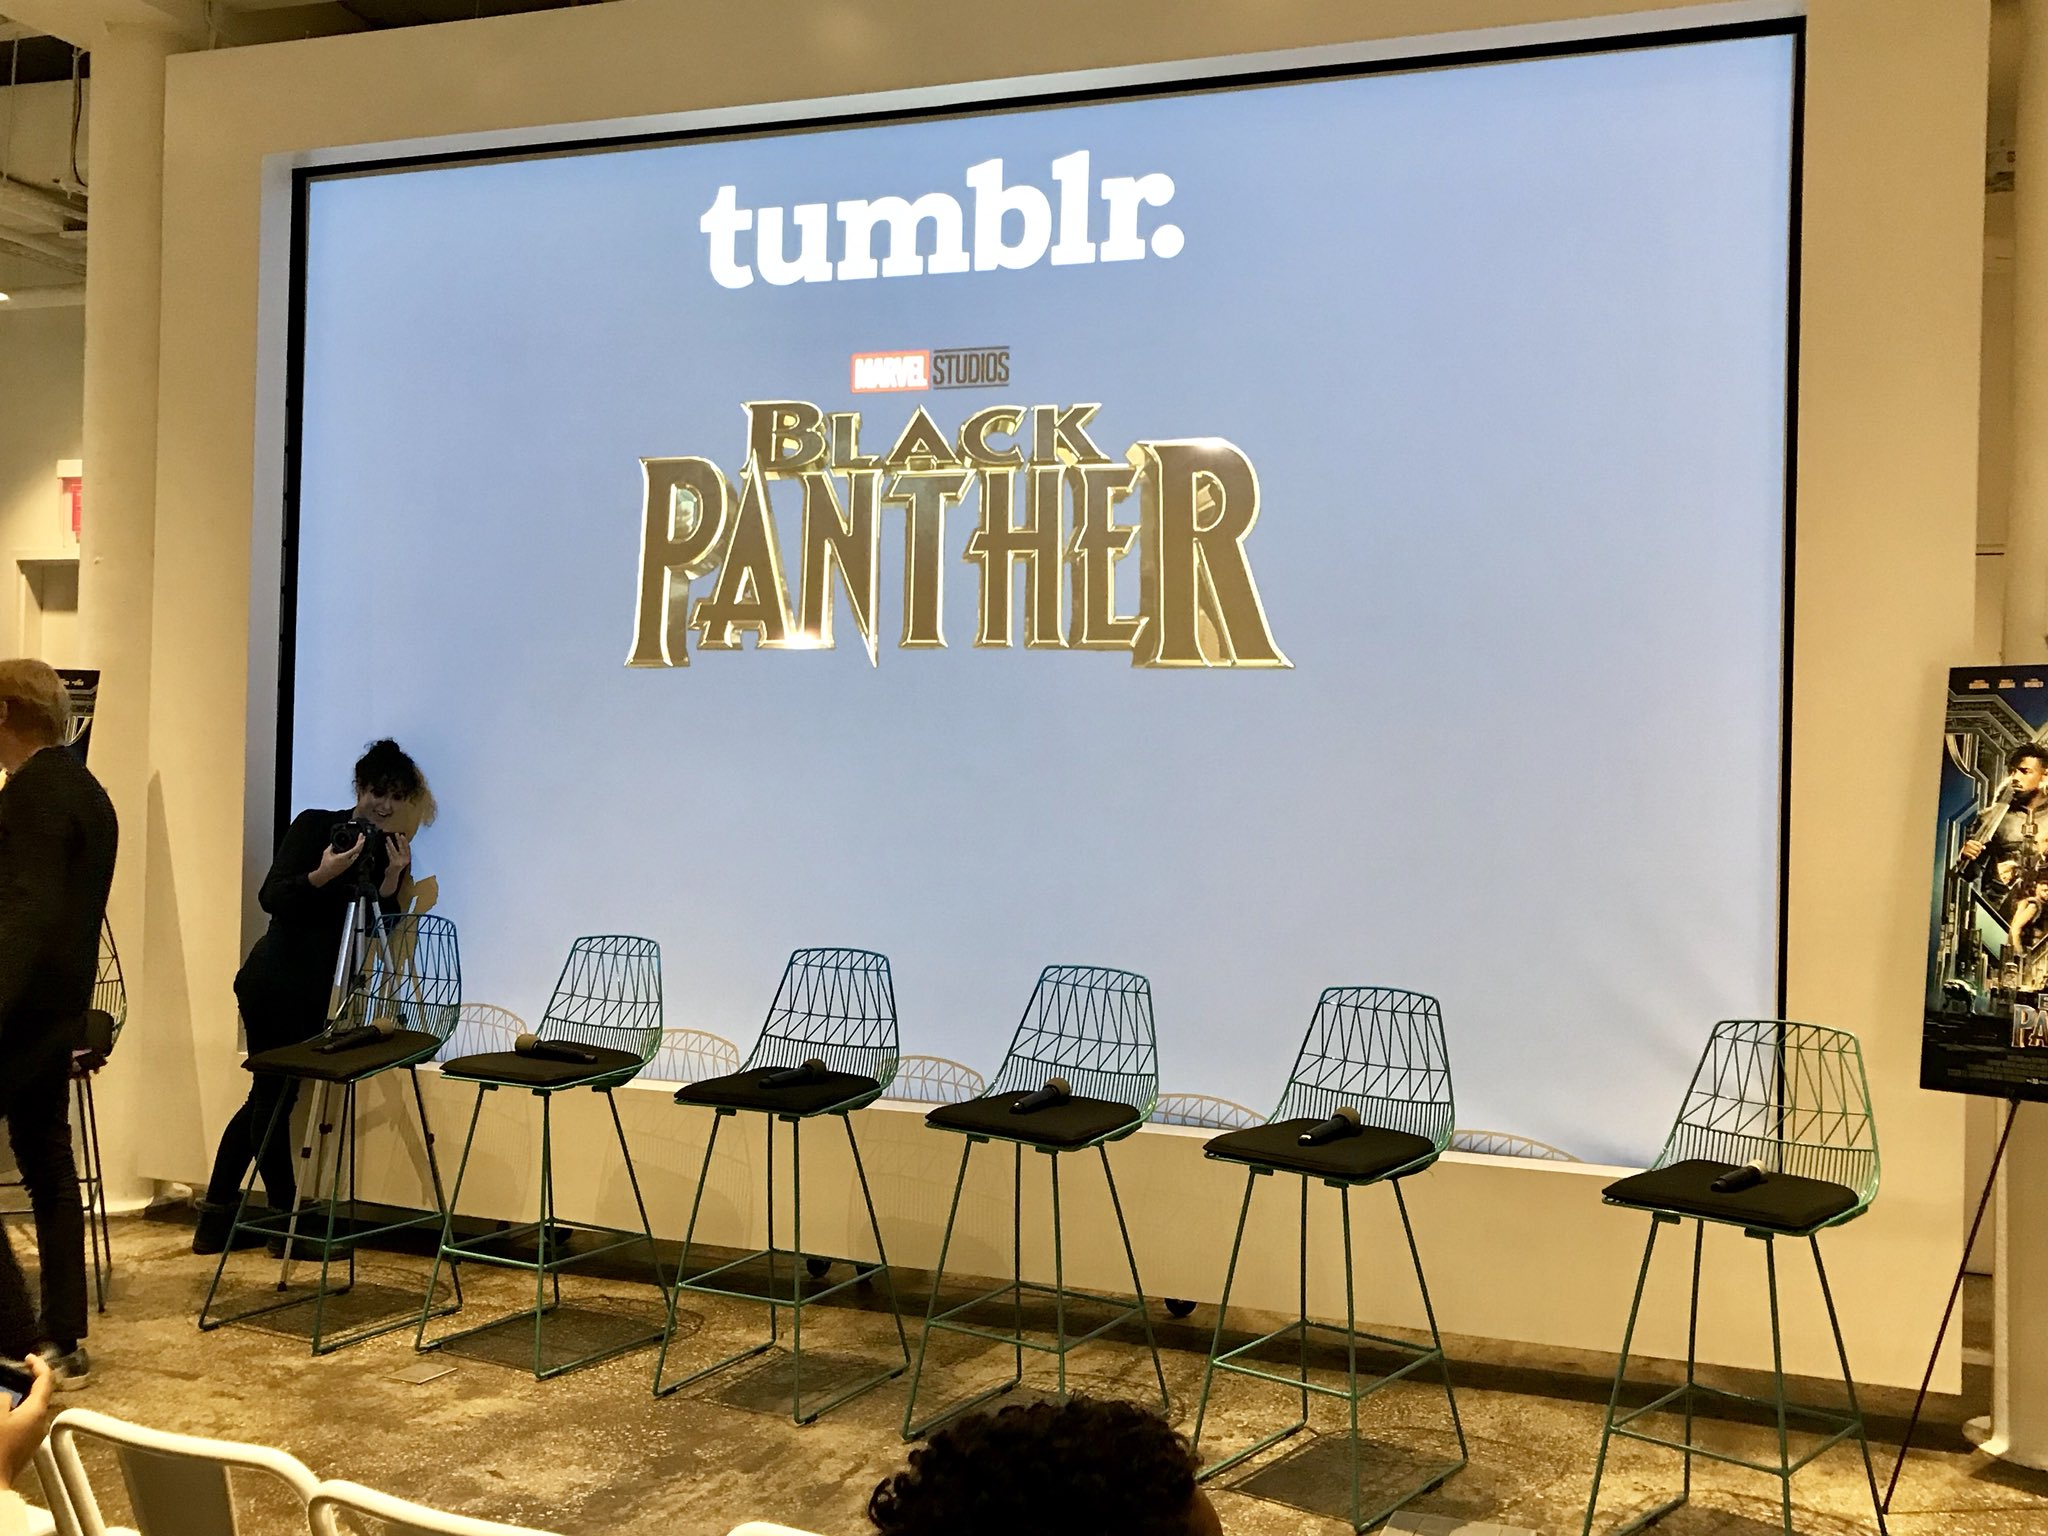 We're at the @tumblr #BlackPanther Q&A fan event! Tune in to our Instagram Stories for more: https://t.co/lODeyvaDzj https://t.co/XawBJFSeke